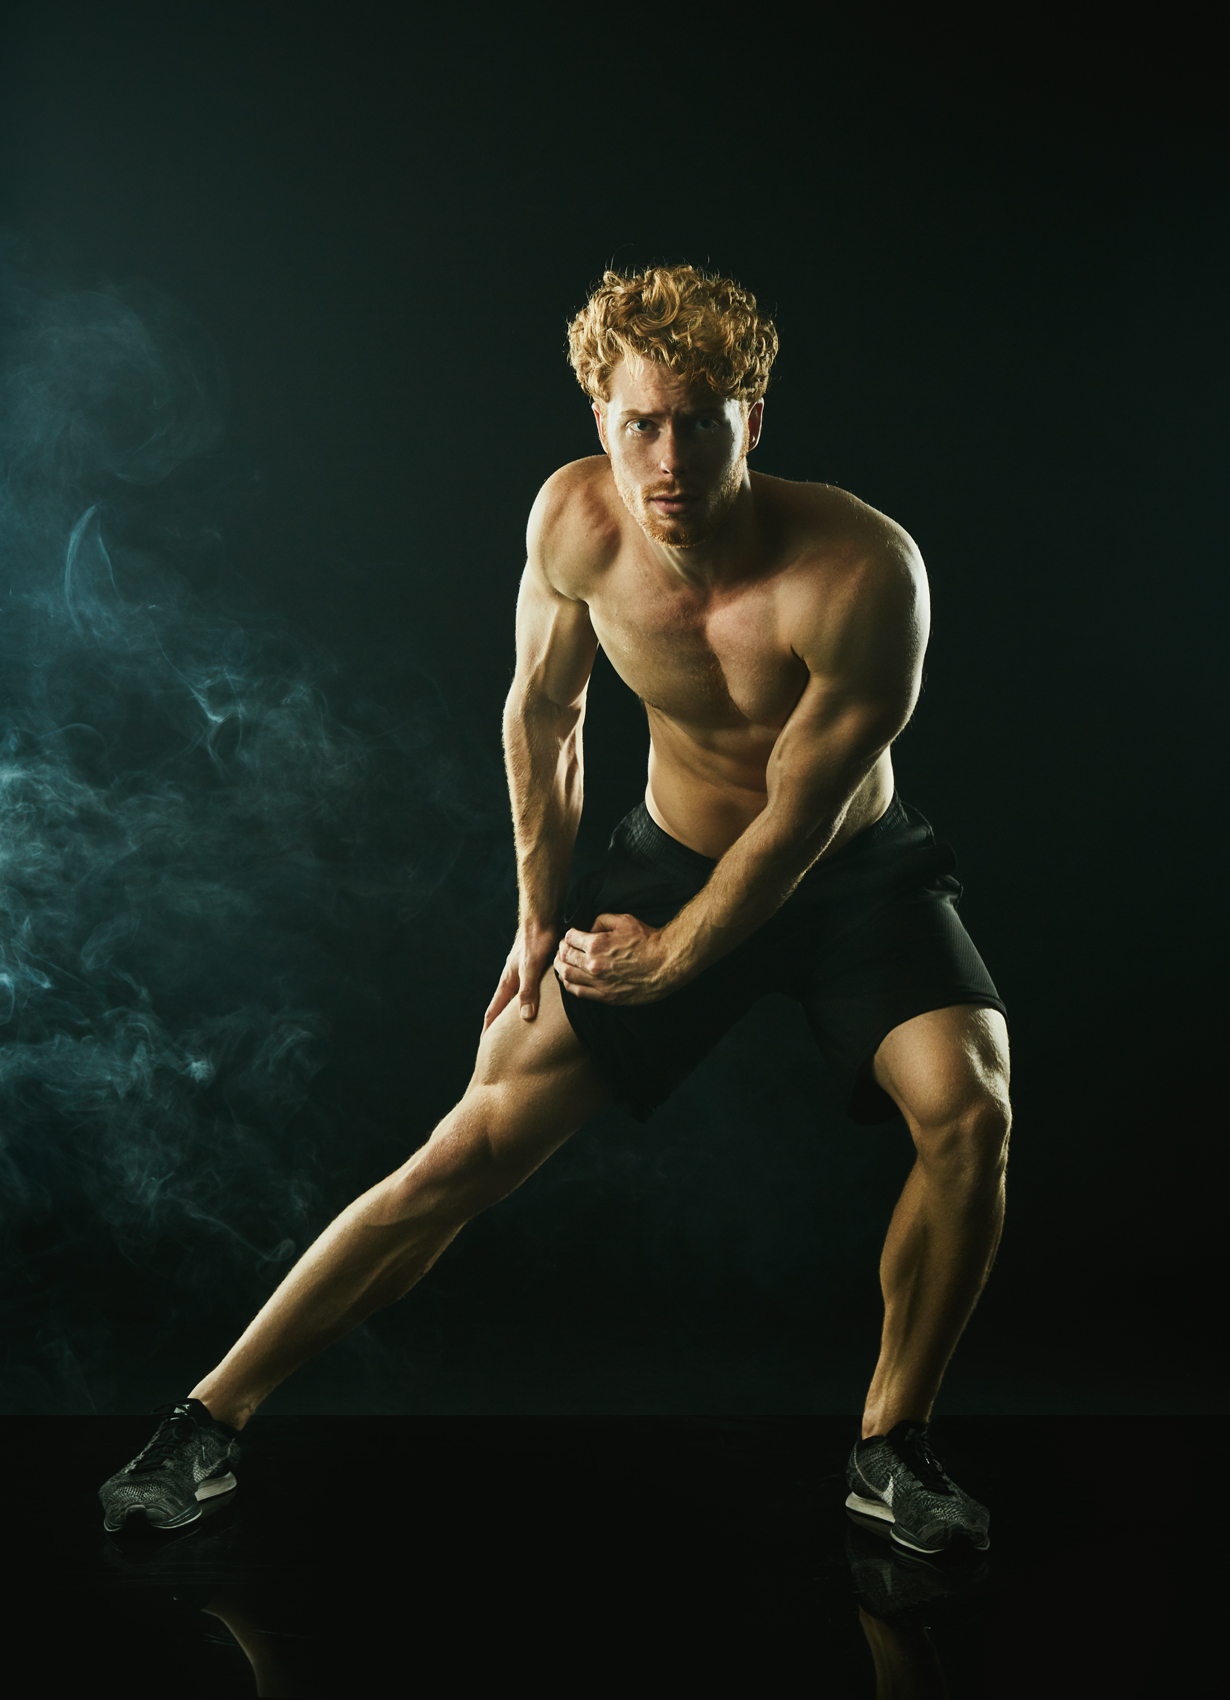 Sports and Fitness Studio Photography Philadelphia